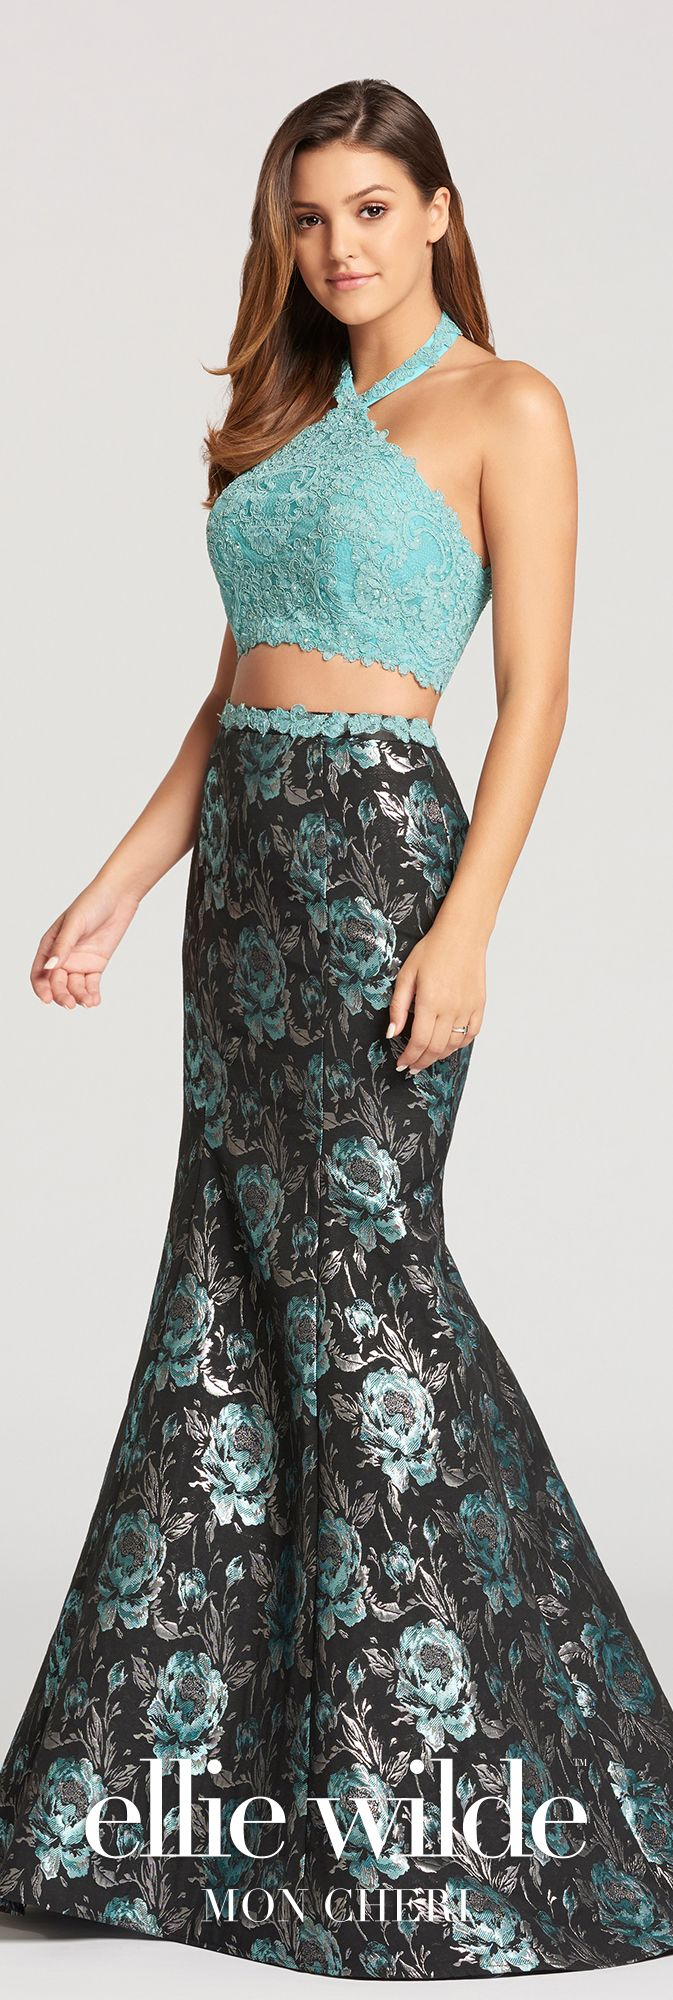 Two-piece sleeveless jacquard and lace trumpet dress with high V-halter neckline, a cropped lace scalloped bodice, and a high-waisted skirt.